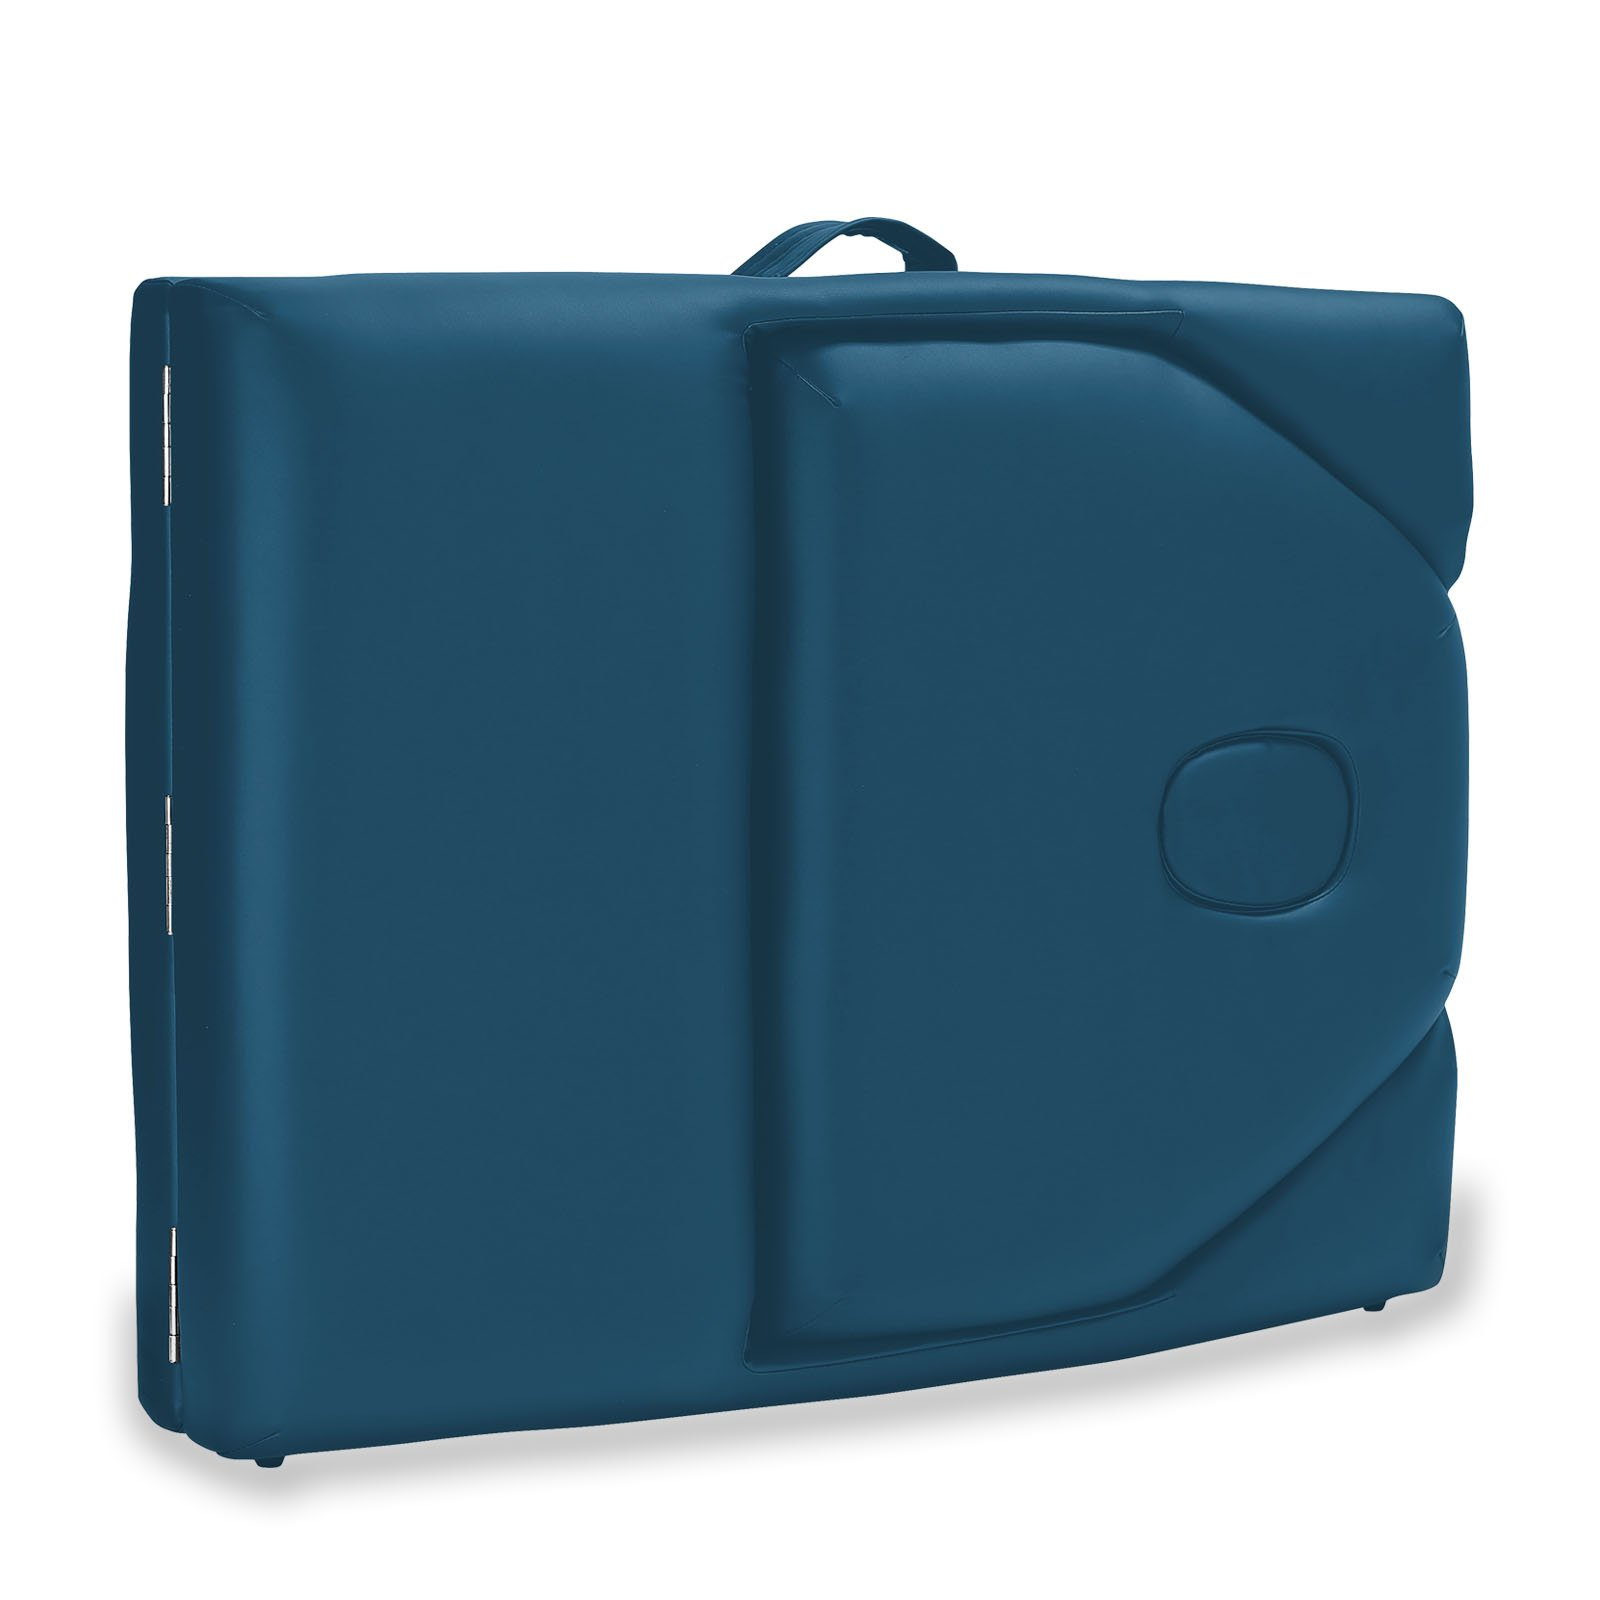 Saloniture Professional Portable Massage Table with Backrest - Blue by Saloniture (Image #5)